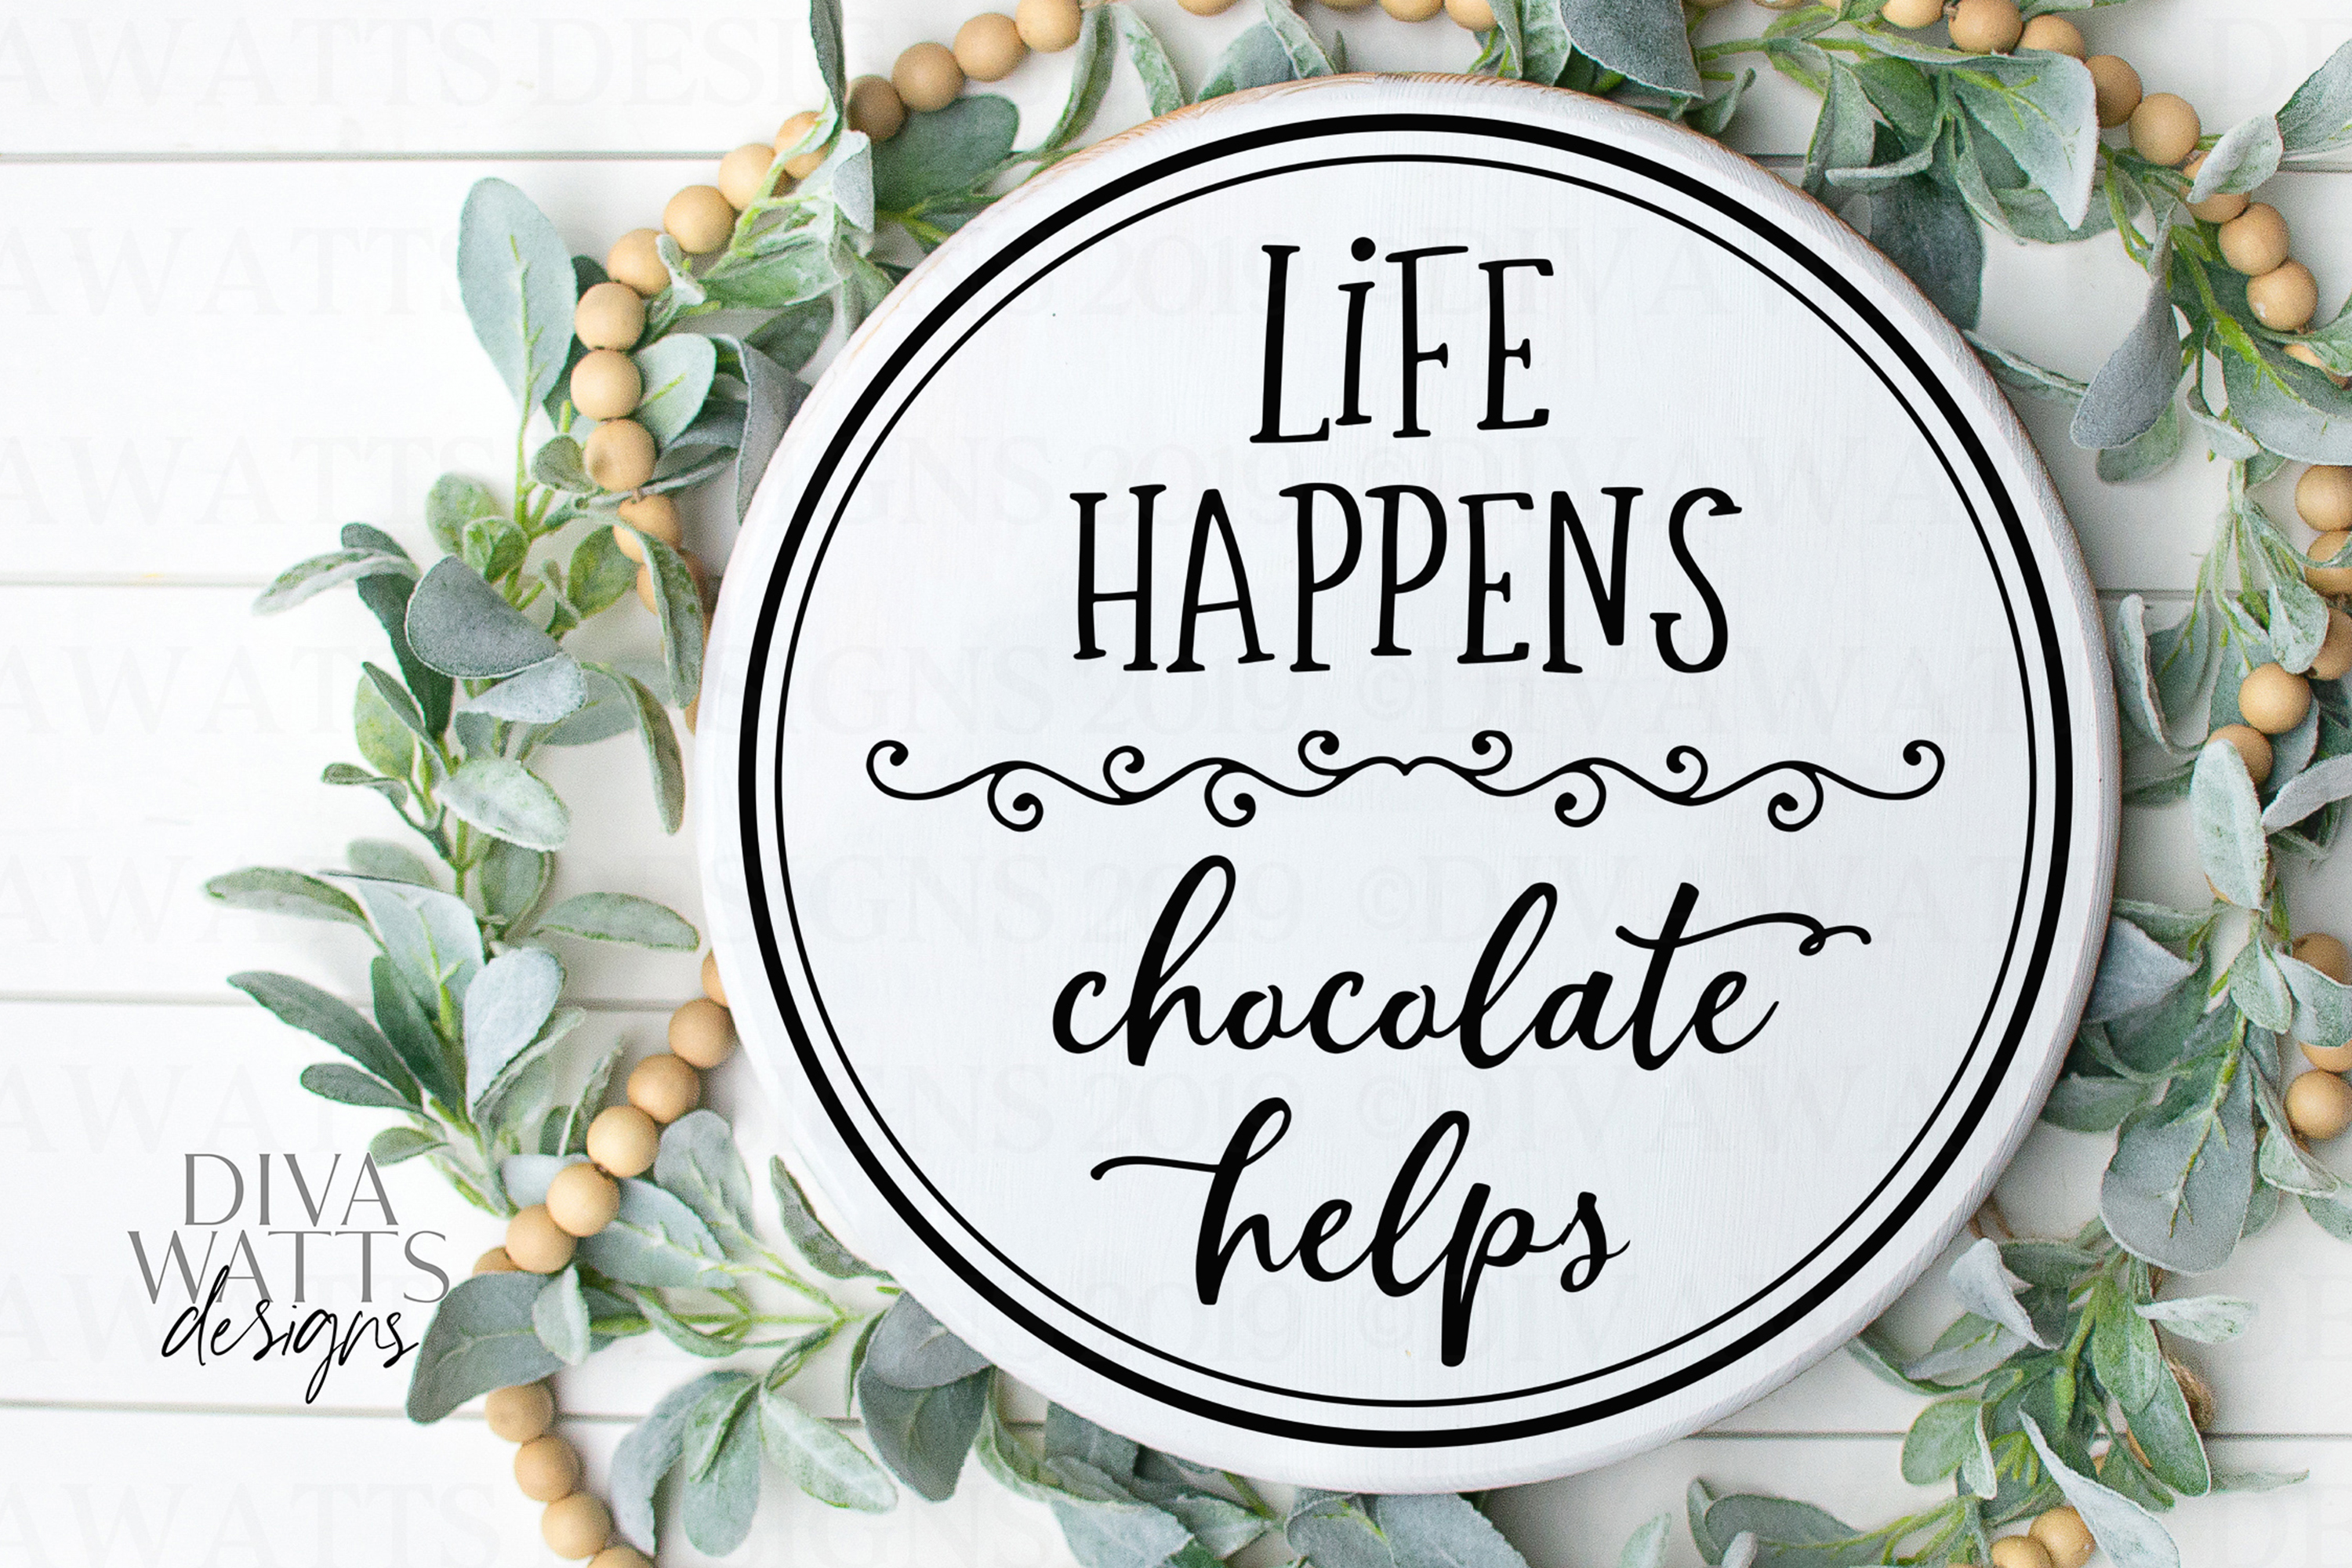 Life Happens Chocolate Helps - Kitchen - Sign - Shirt - SVG example image 1